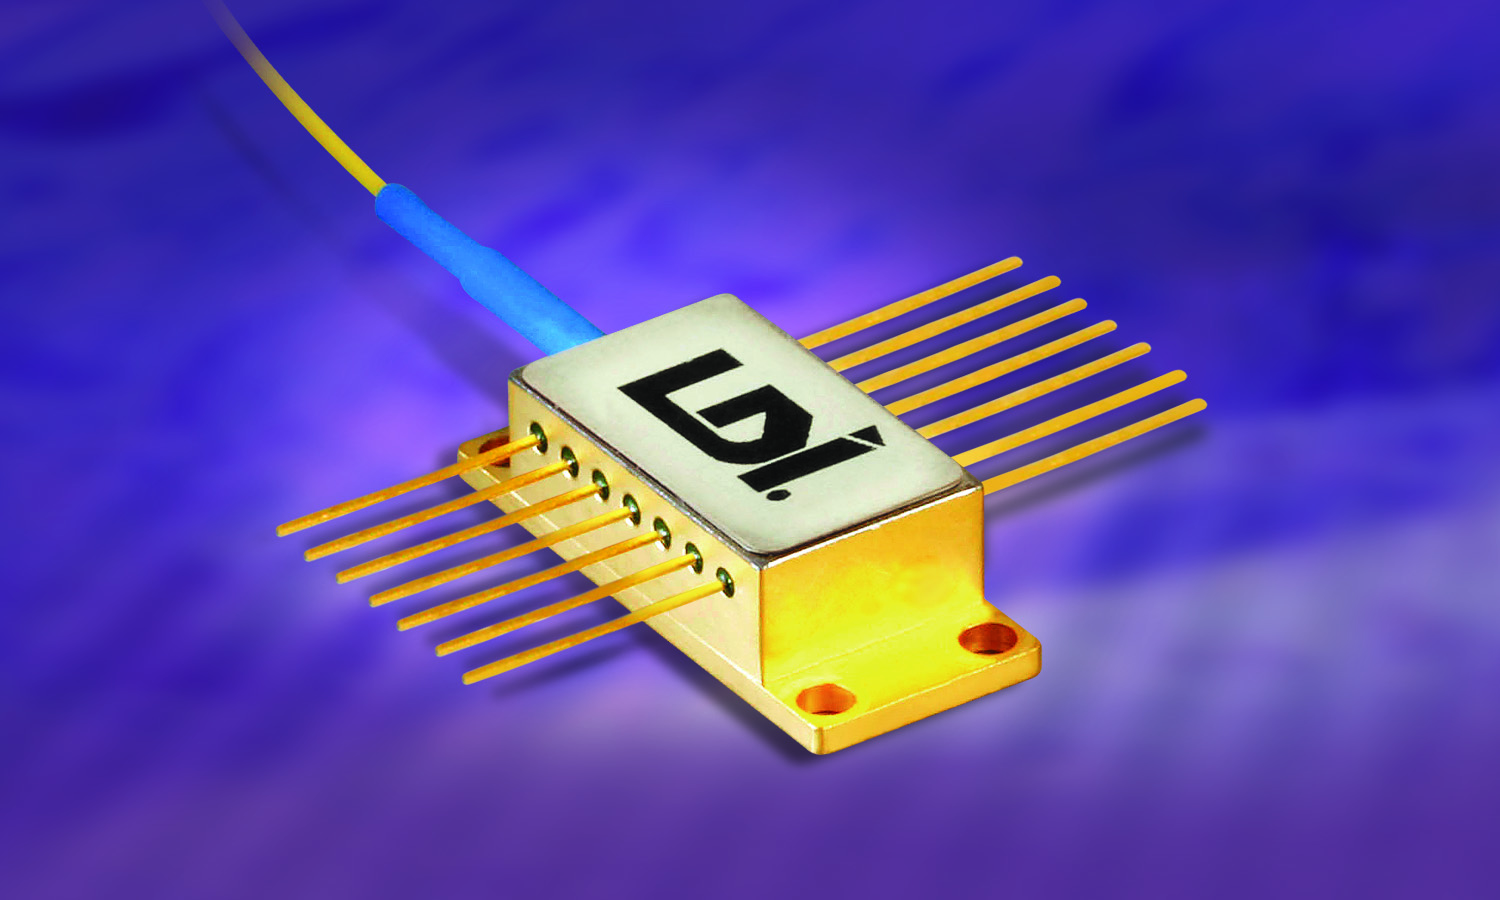 Pulsed laser diode module for optical testing